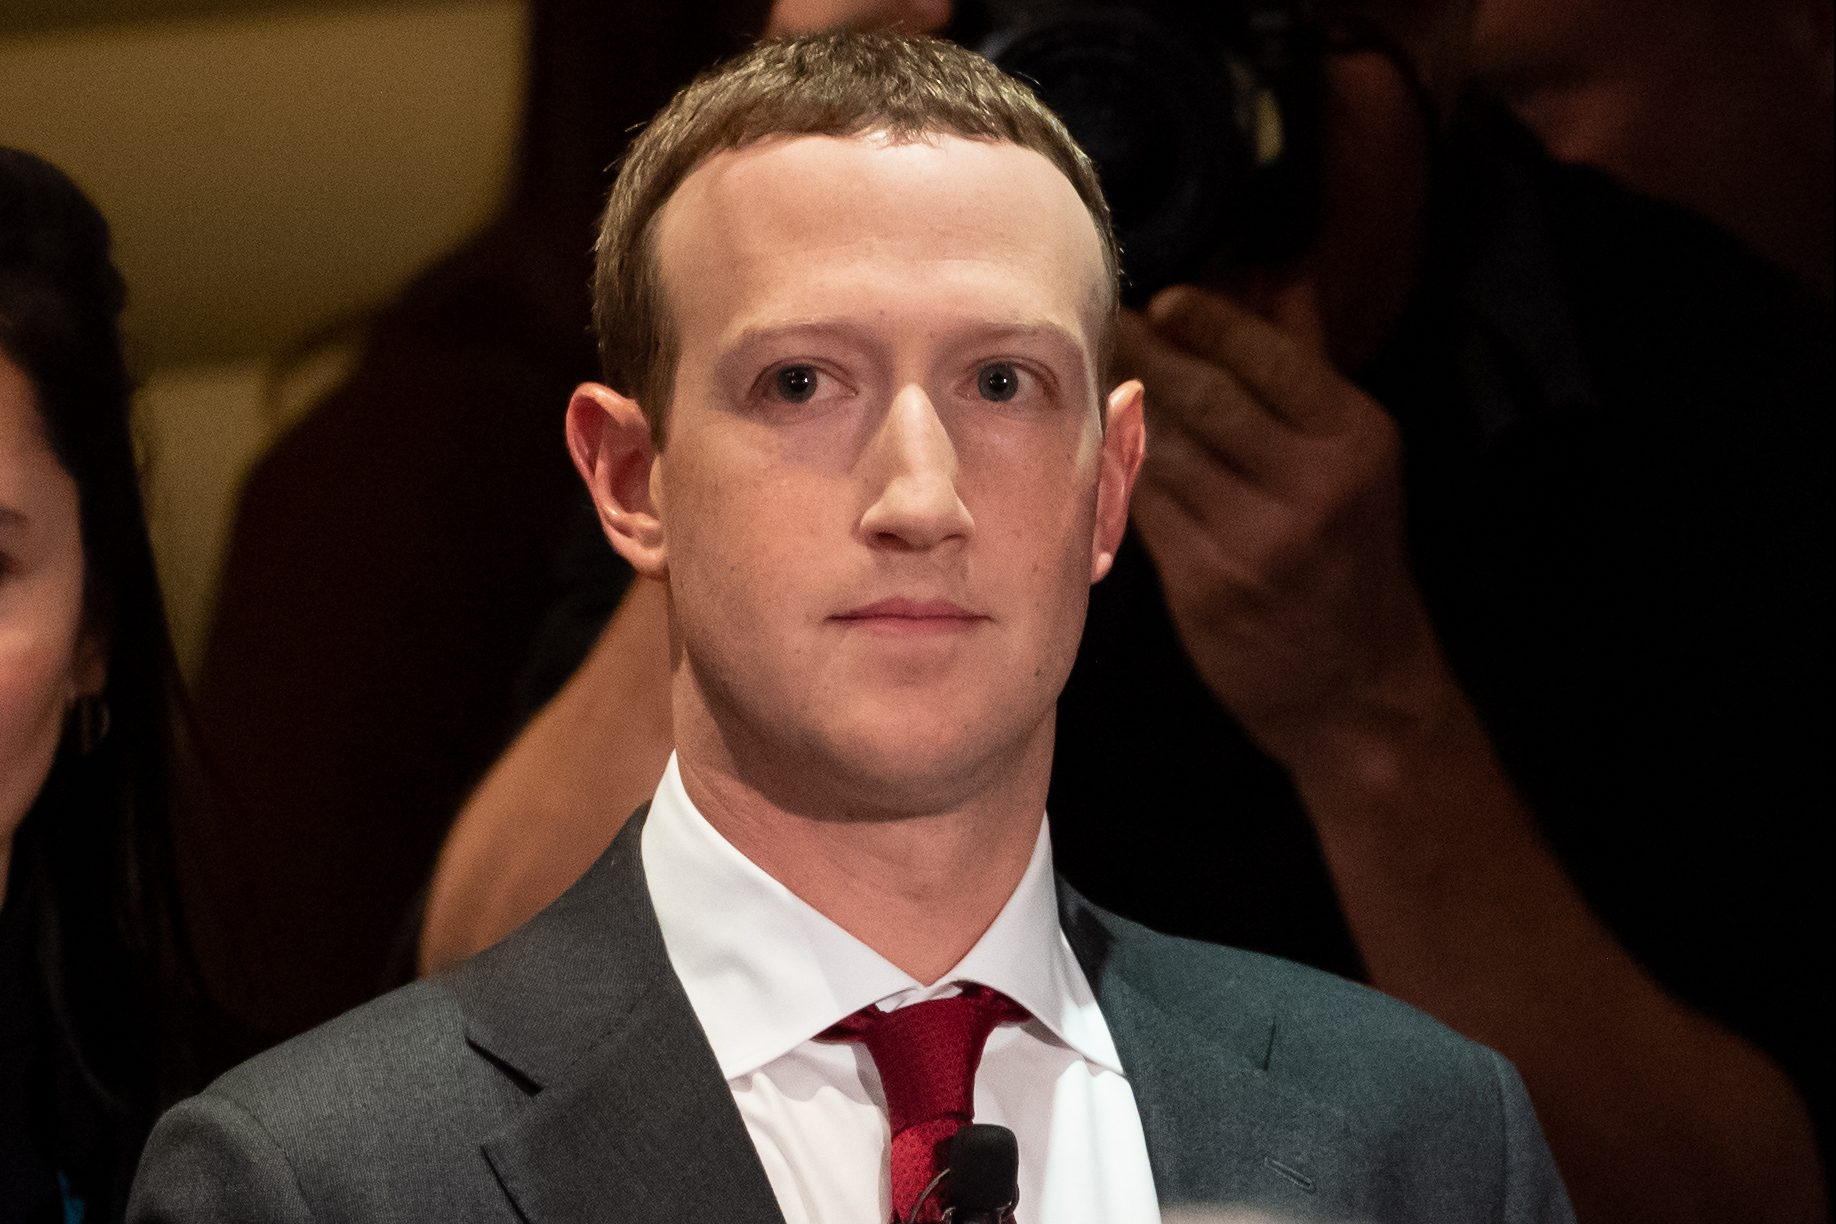 Feeling Heat, Mark Zuckerberg Will Meet With Civil Rights Groups Boycotting Facebook